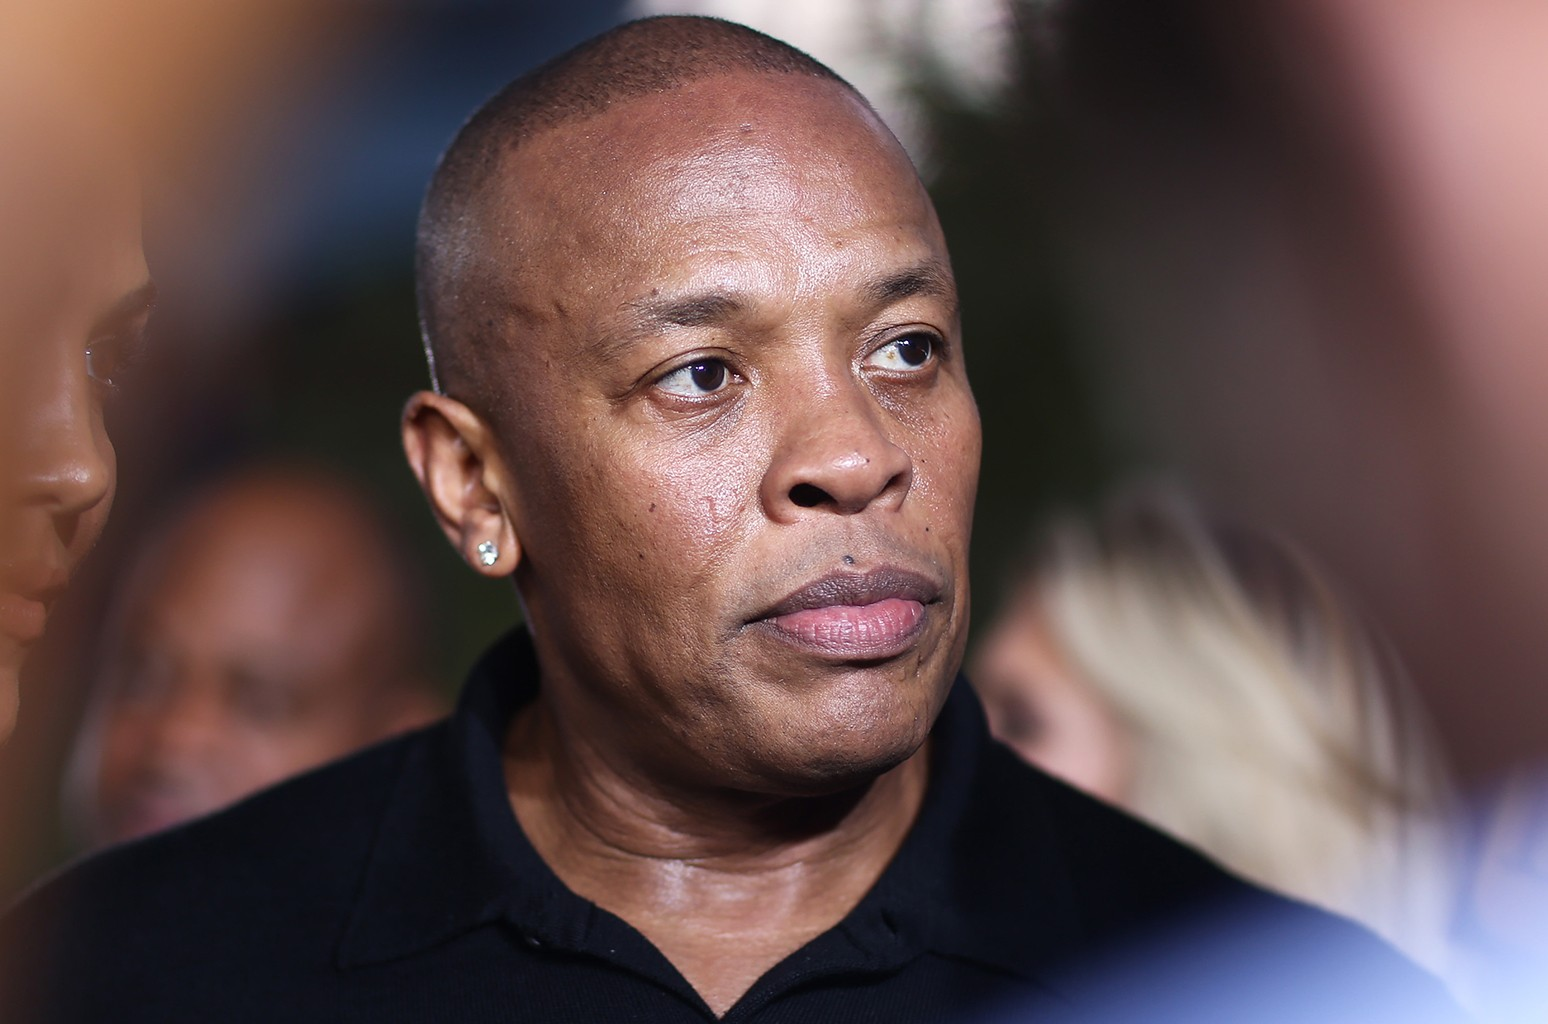 Dr. Dre Gets Love From Ice Cube, Missy Elliott, LL Cool J & More After Hospitalization - Billboard